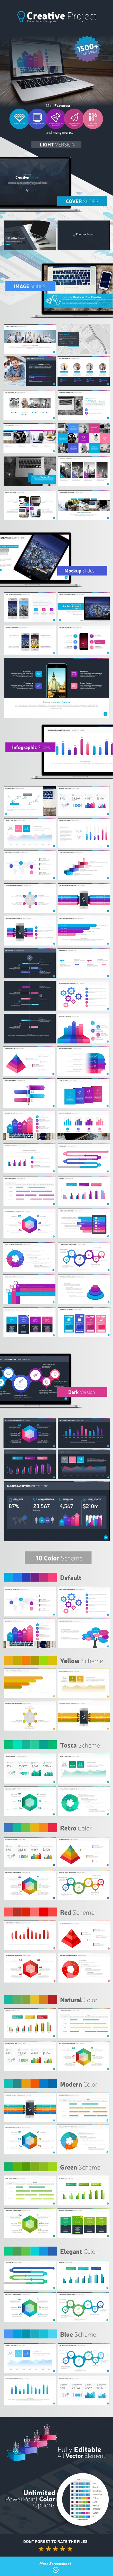 Creative Project Presentation Template - Business PowerPoint Templates